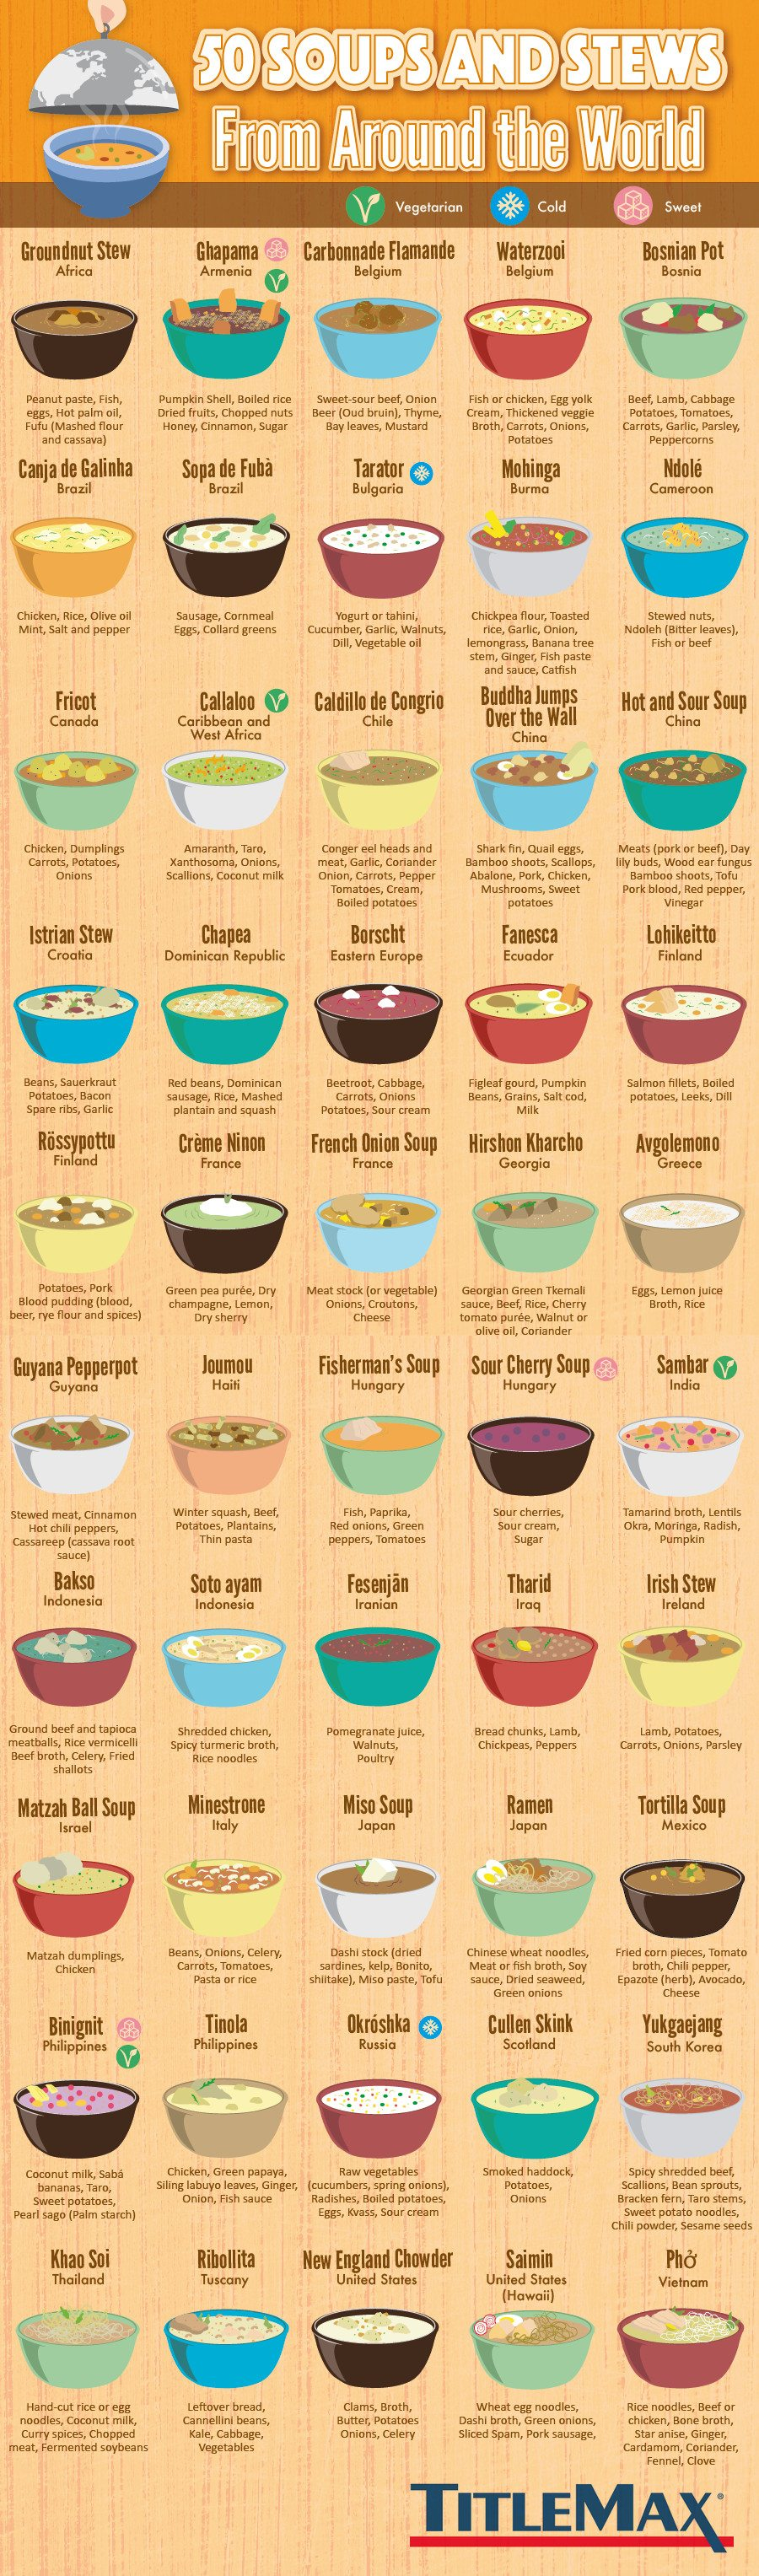 Soups and Stews around the world recipes